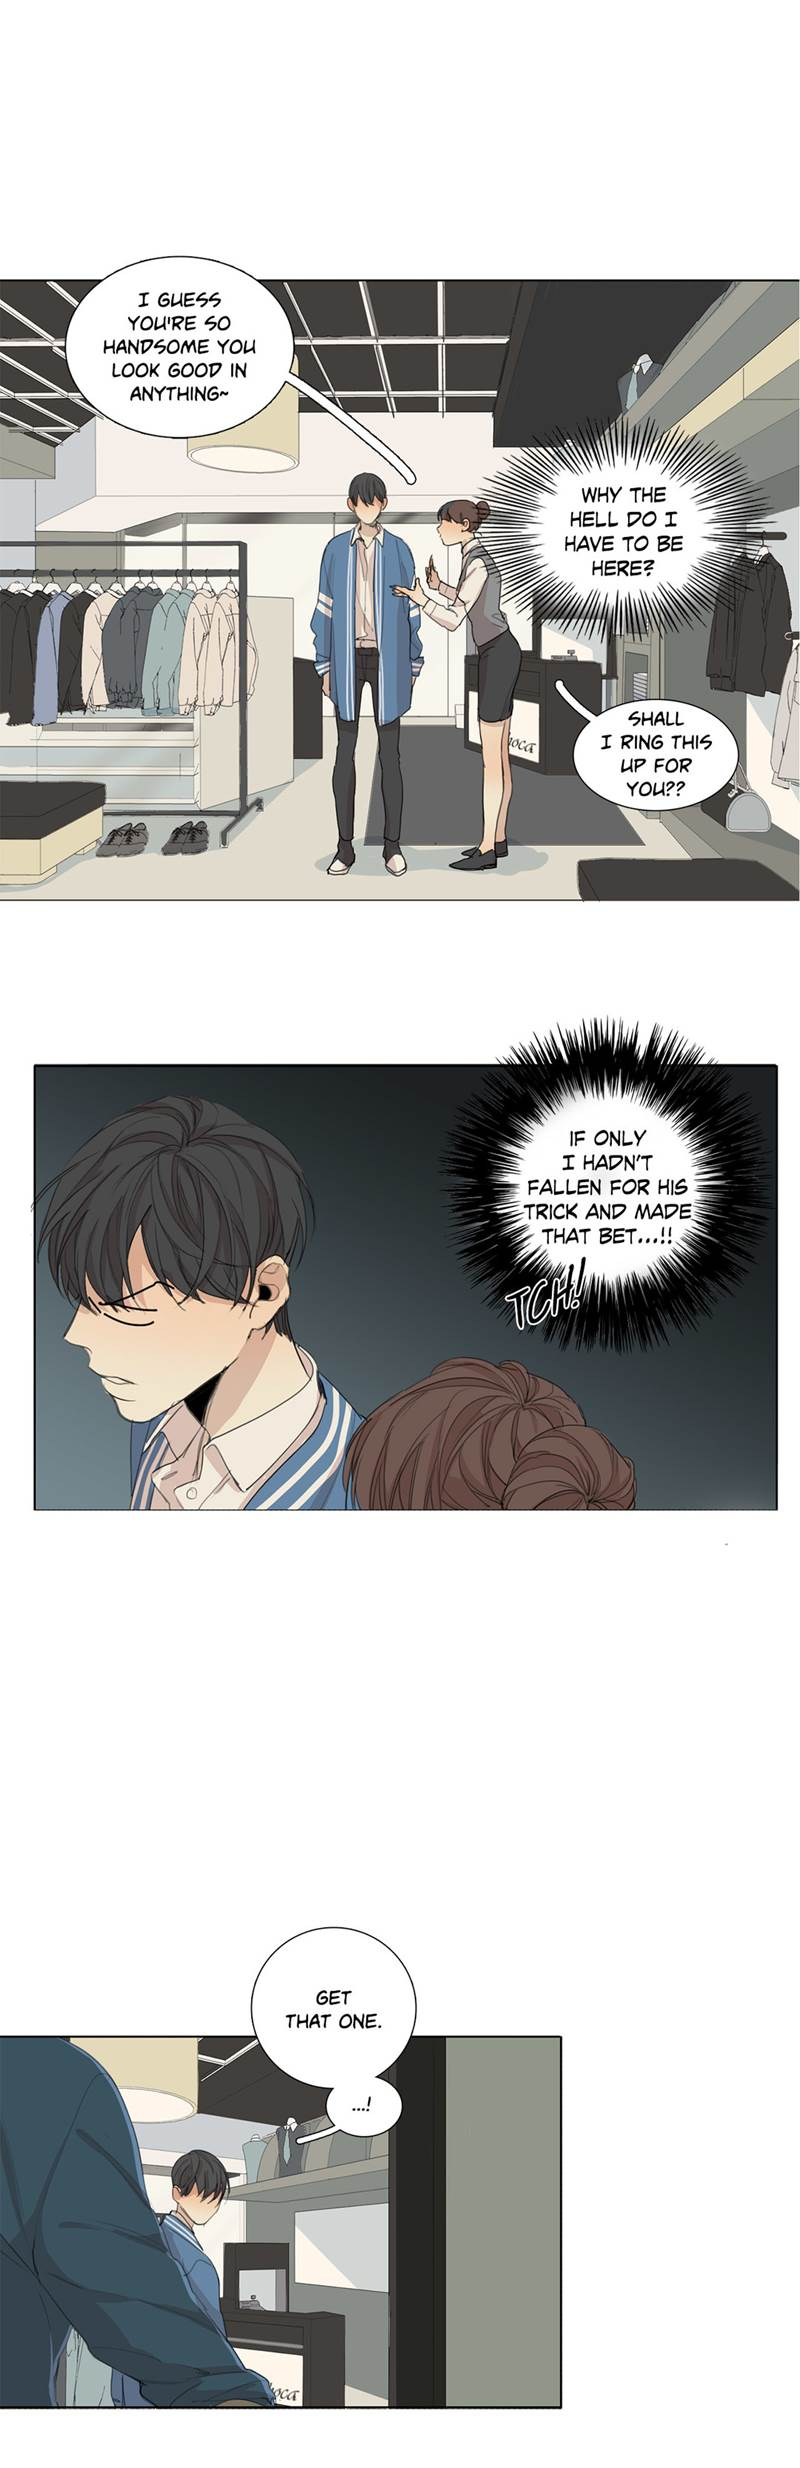 What Lies at the End - Chapter 44